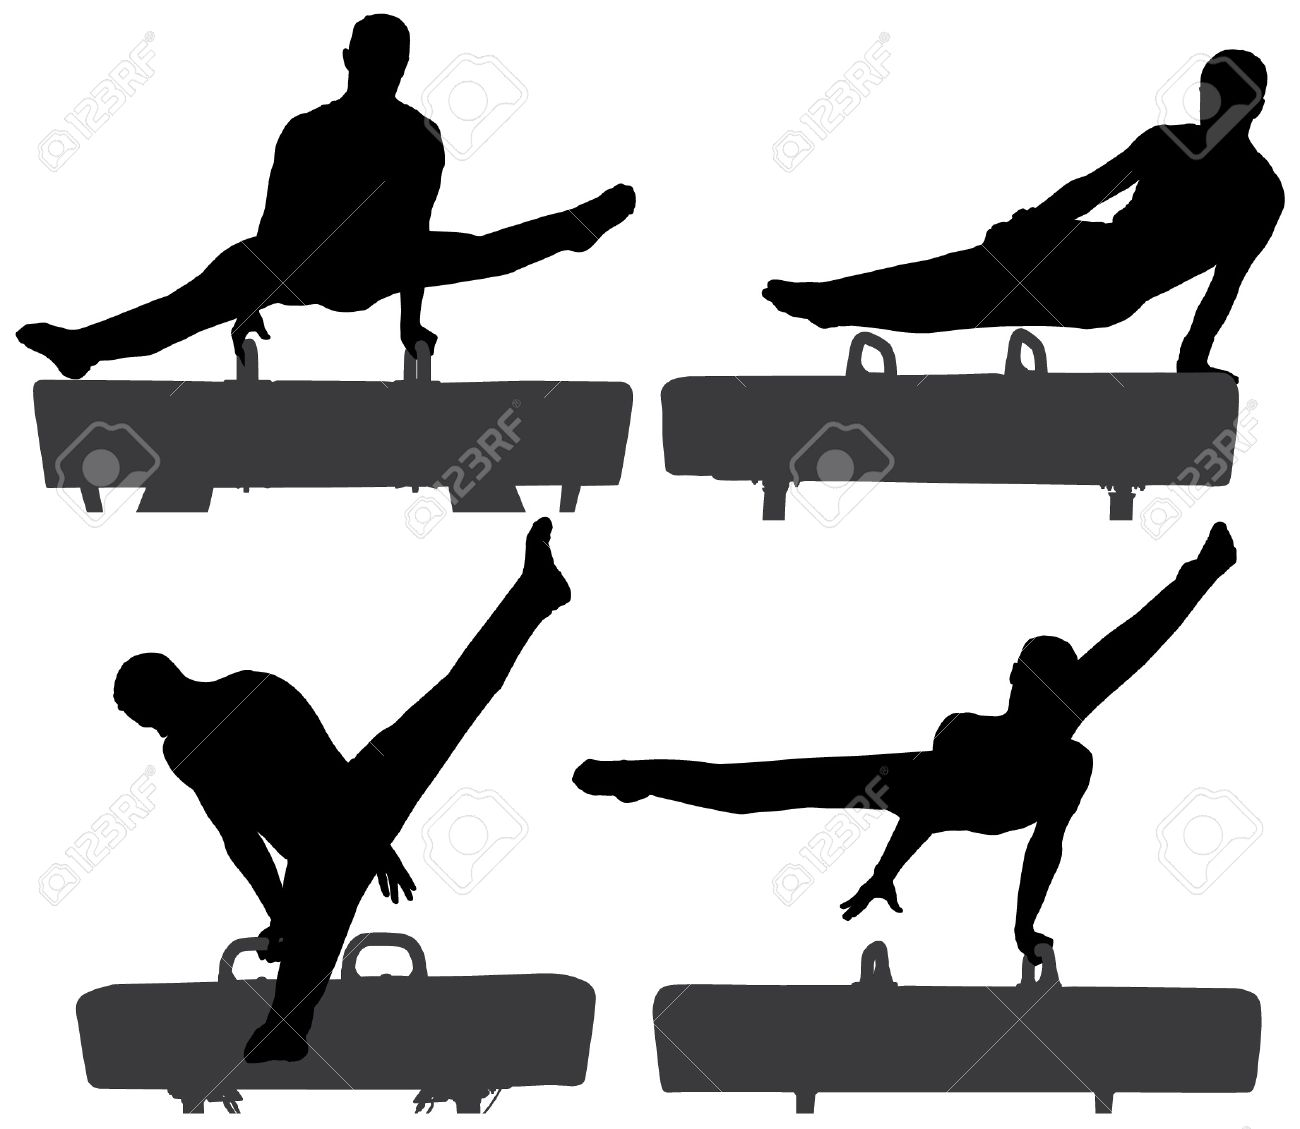 Gymnast On Pommel Horse Silhouette On White Background Royalty 1300x1129